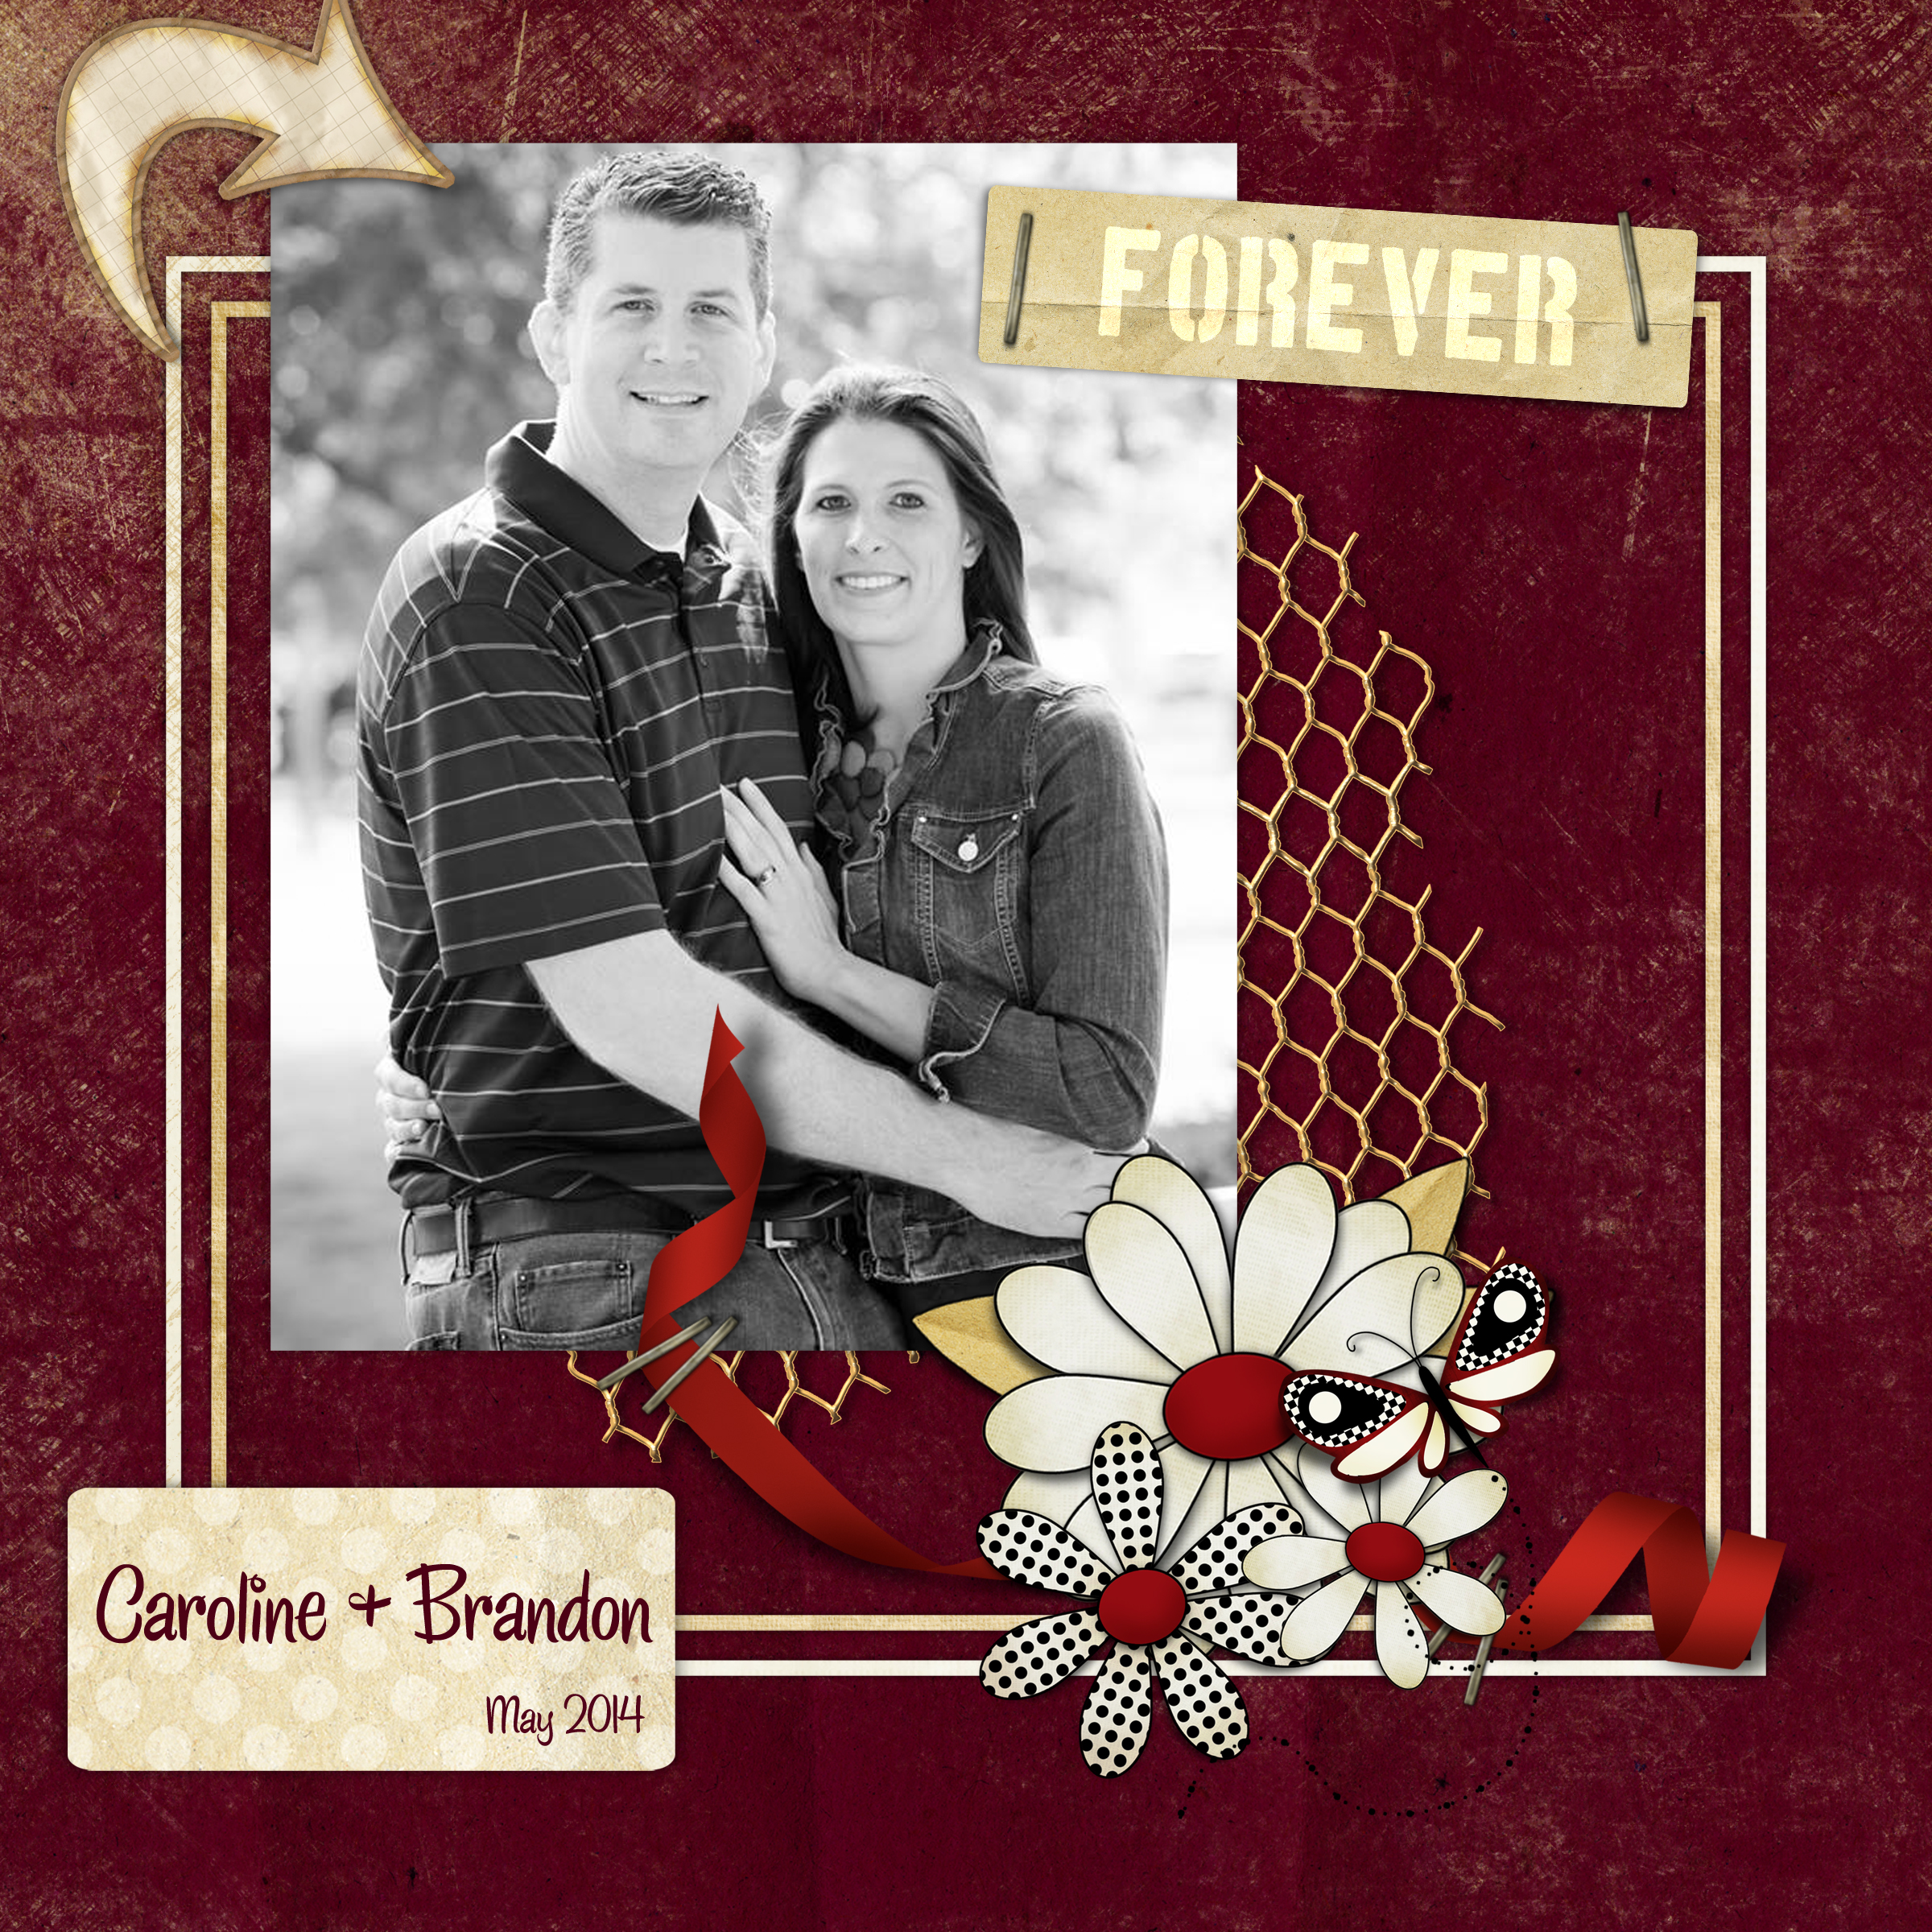 Caroline & Brandon - May 2014 copy.jpg